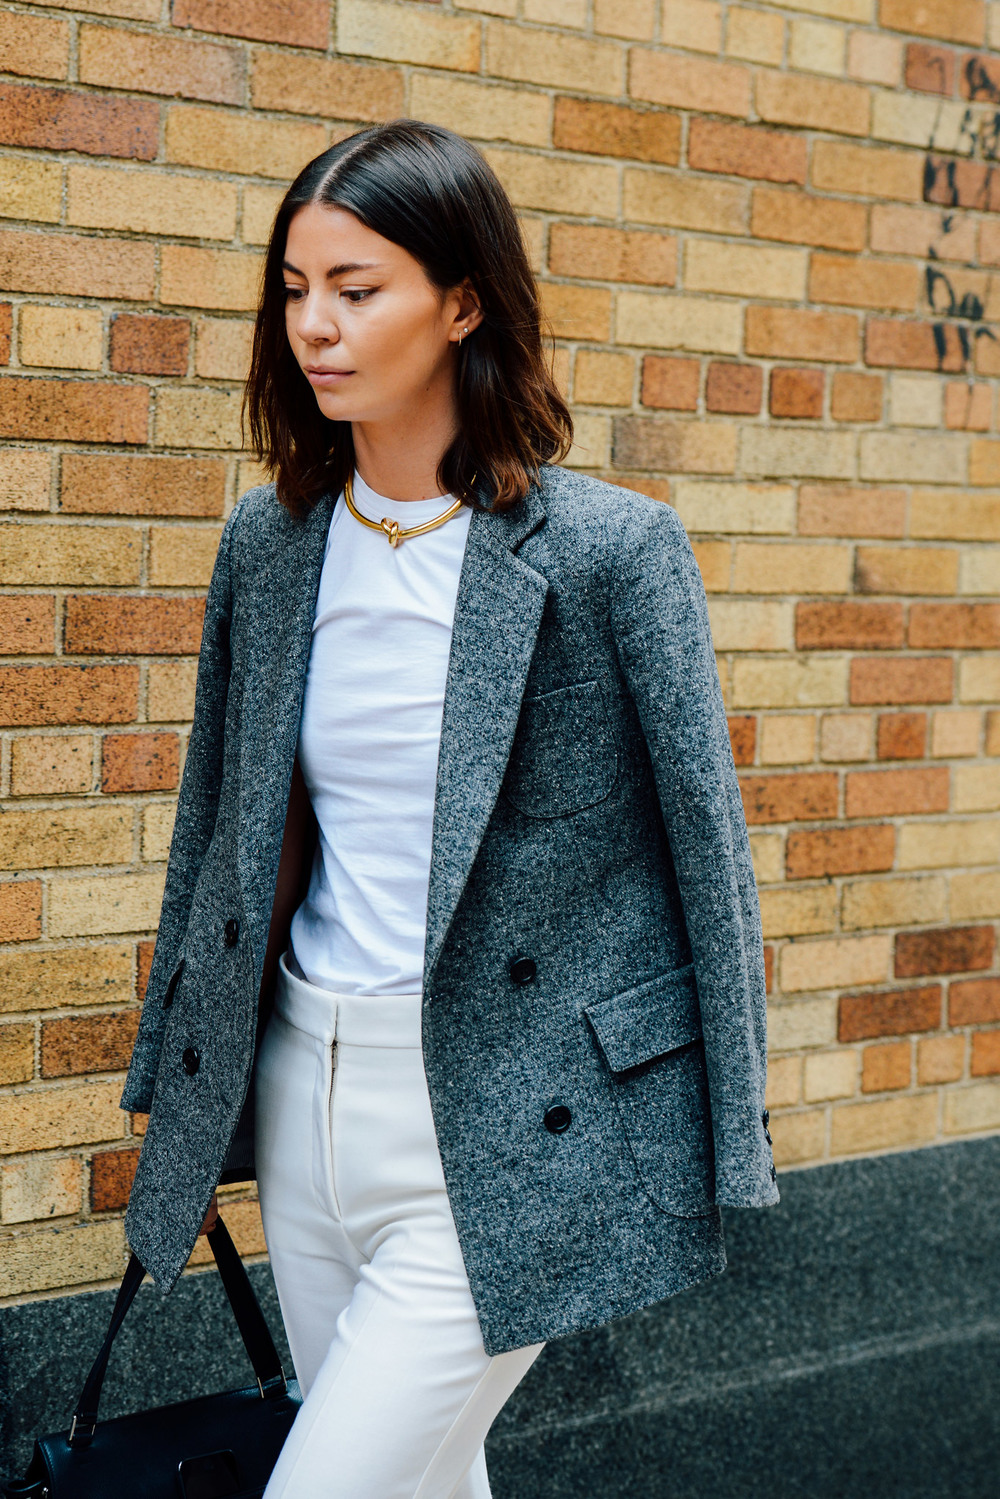 Simple separates + statement coat thrown over the shoulders = beyond chic.